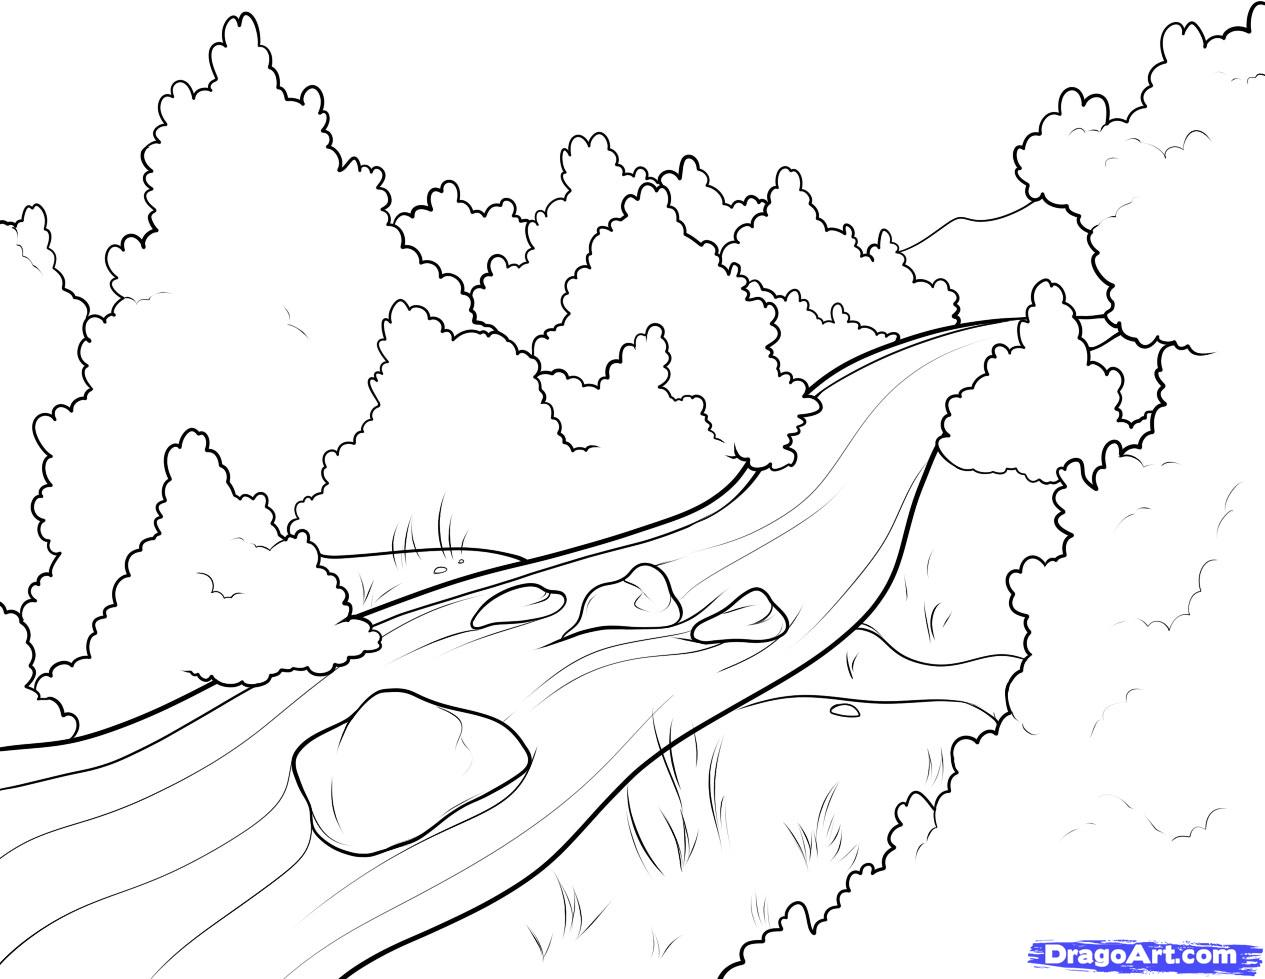 Drawn river To Step  a 6